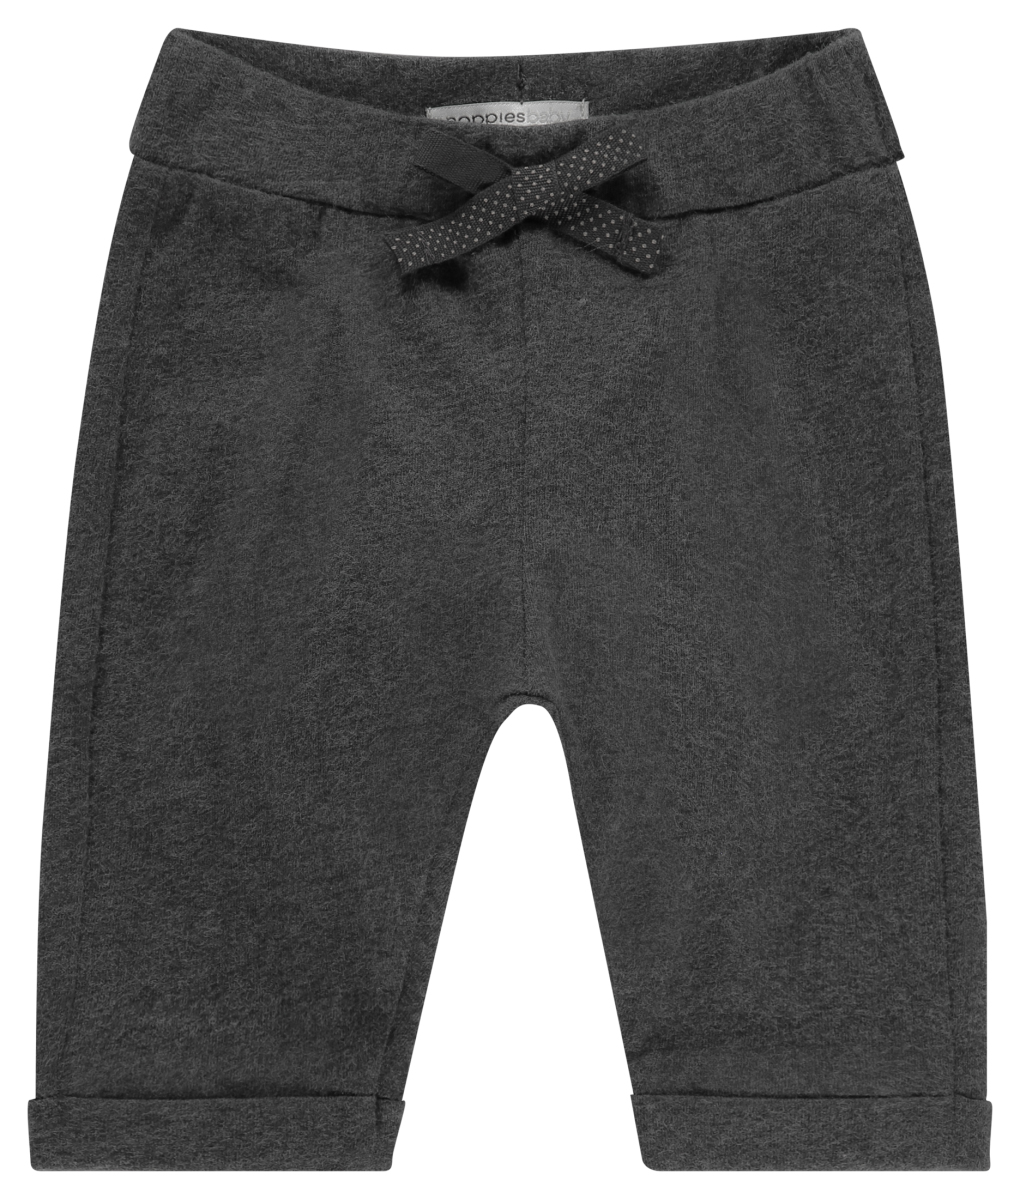 Noppies Pantalon de survêtement Chili charcoal-melange